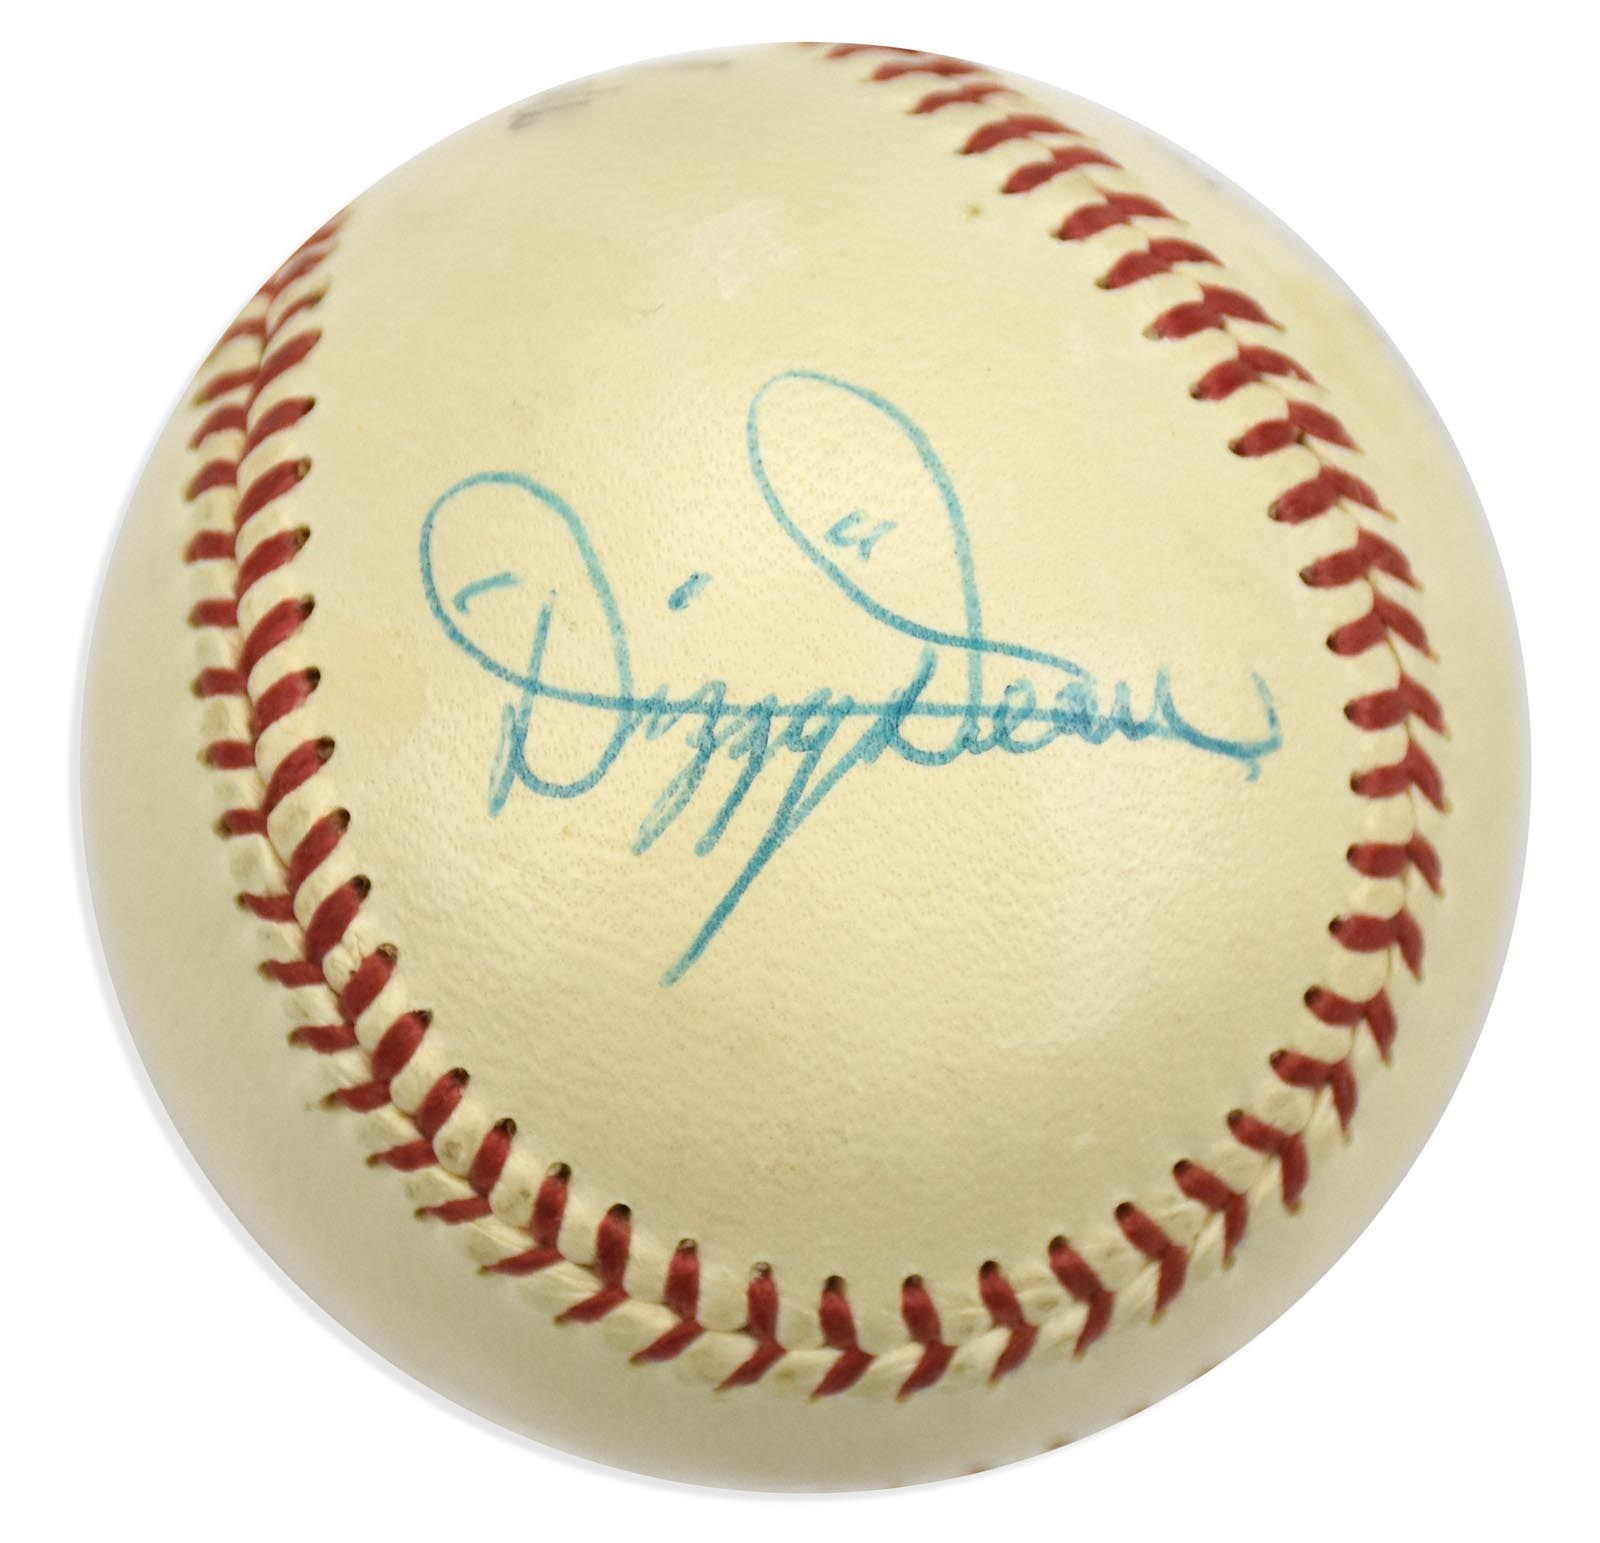 High Grade Dizzy Dean Single Signed Baseball (PSA NM-MT 8)